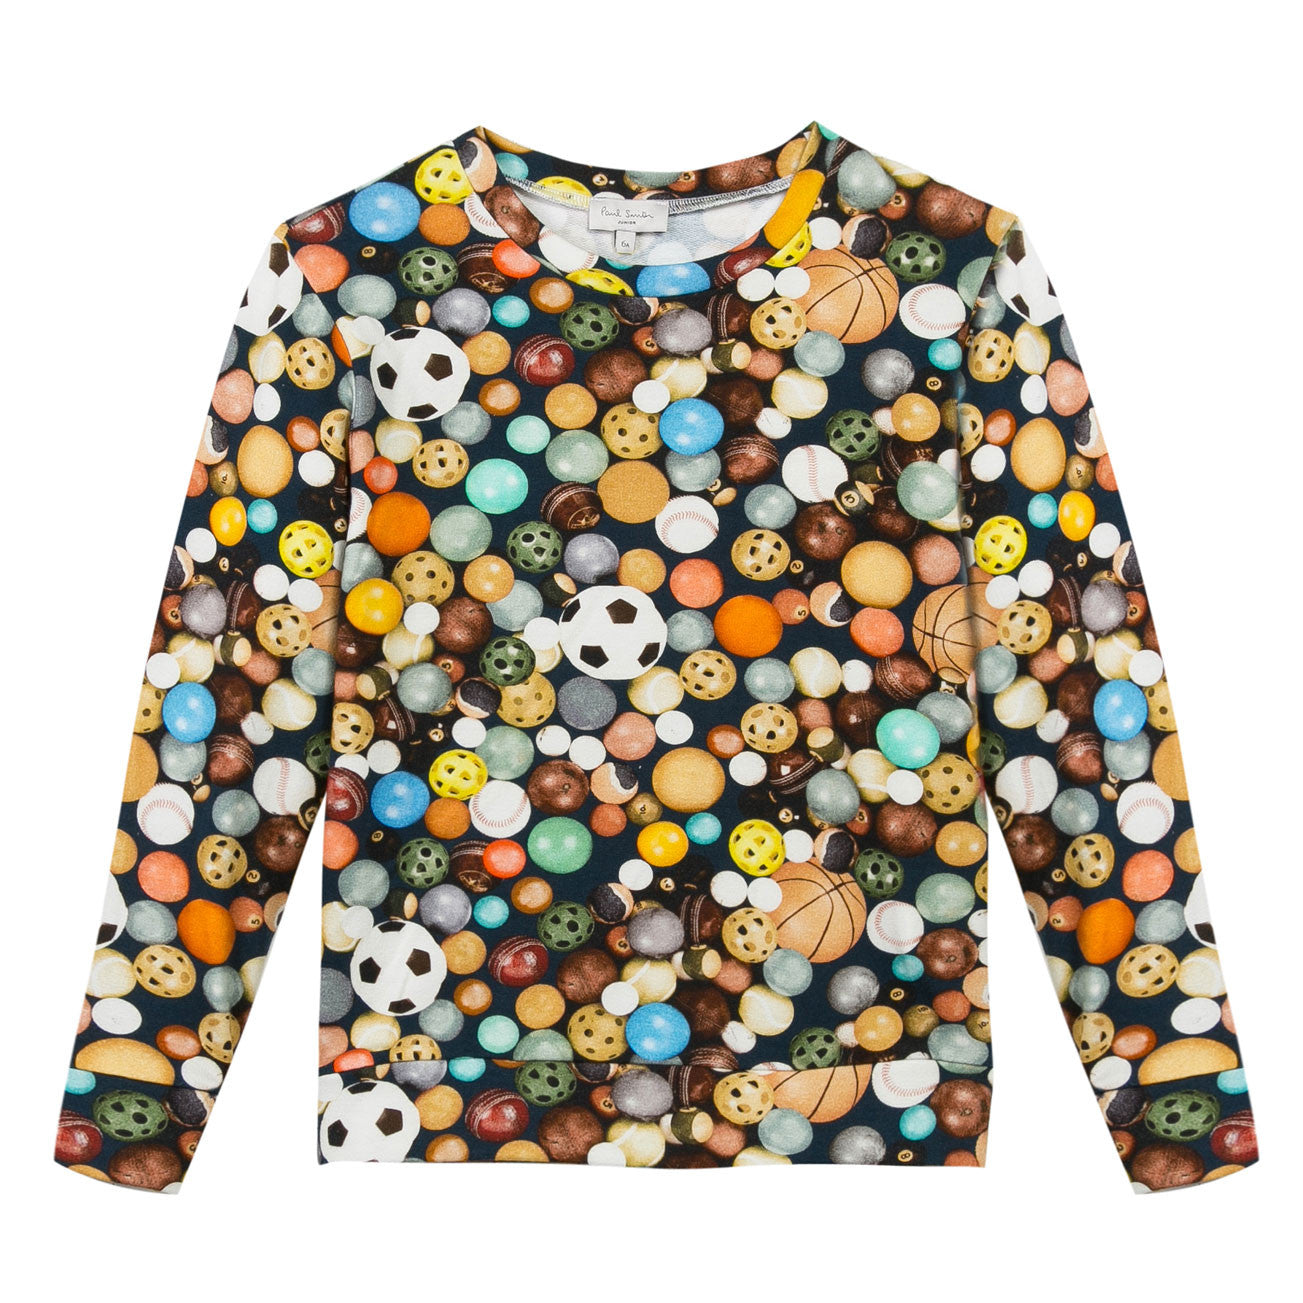 Paul Smith Ball Sweatshirt - Ladida